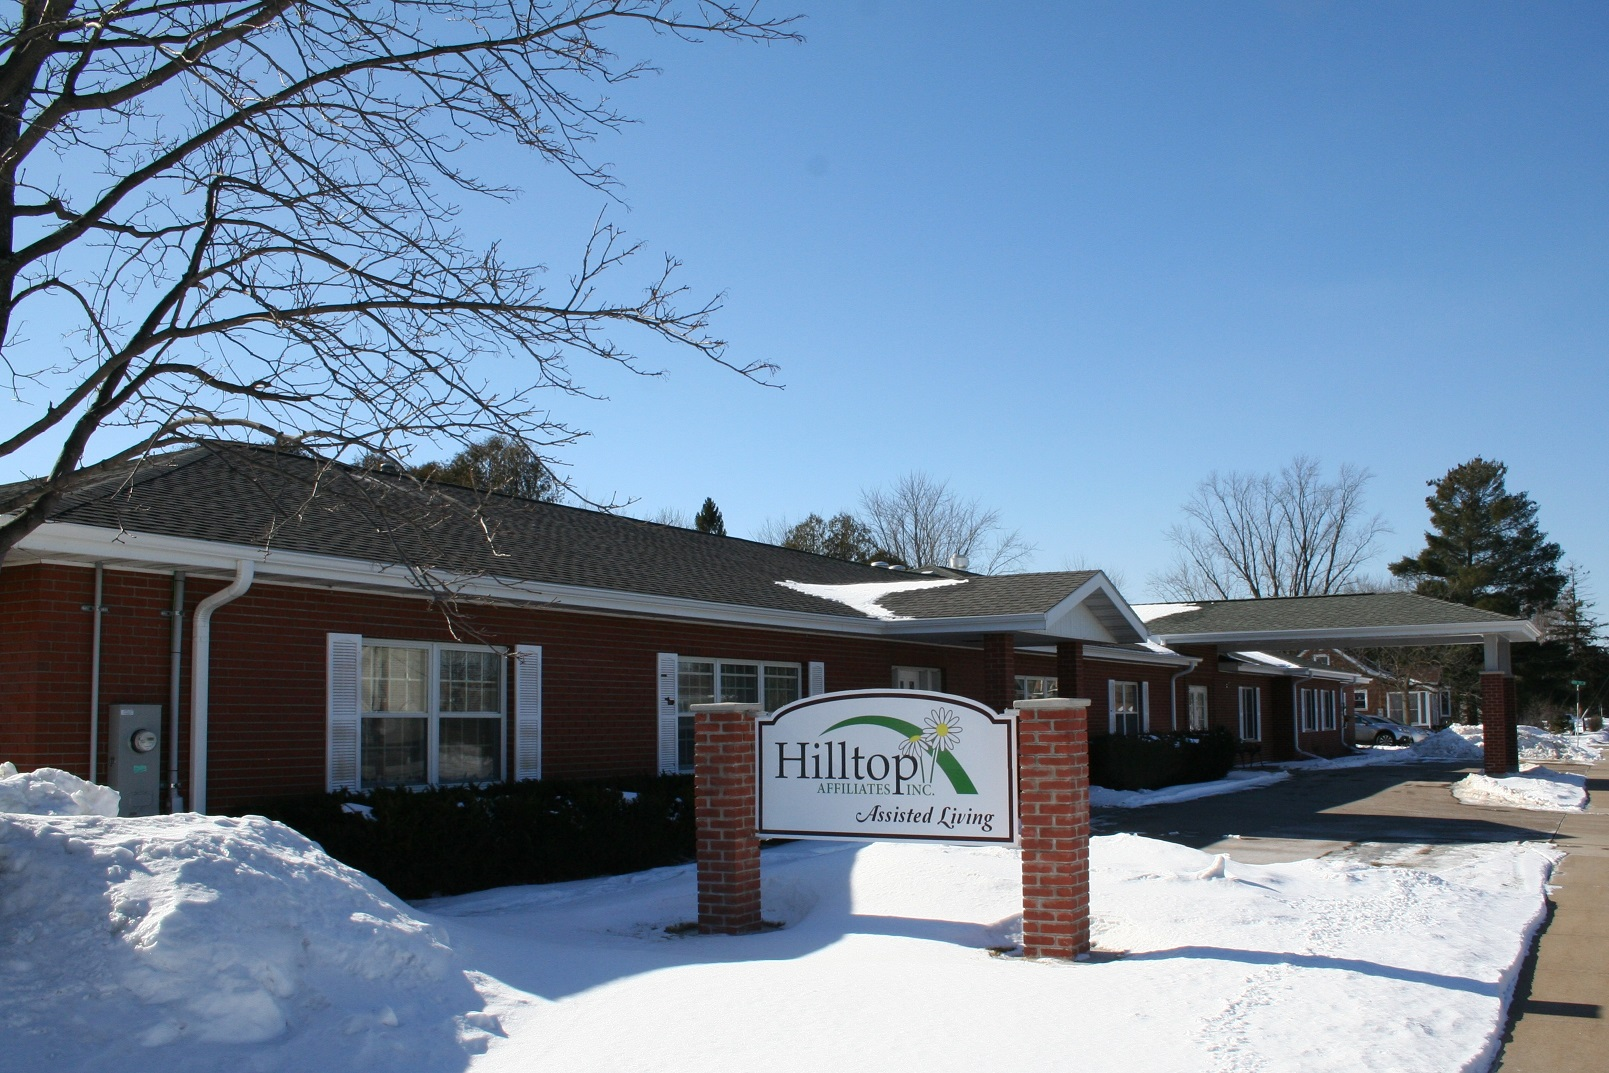 hilltop affiliates inc 1400 24th st south wisconsin rapids wi